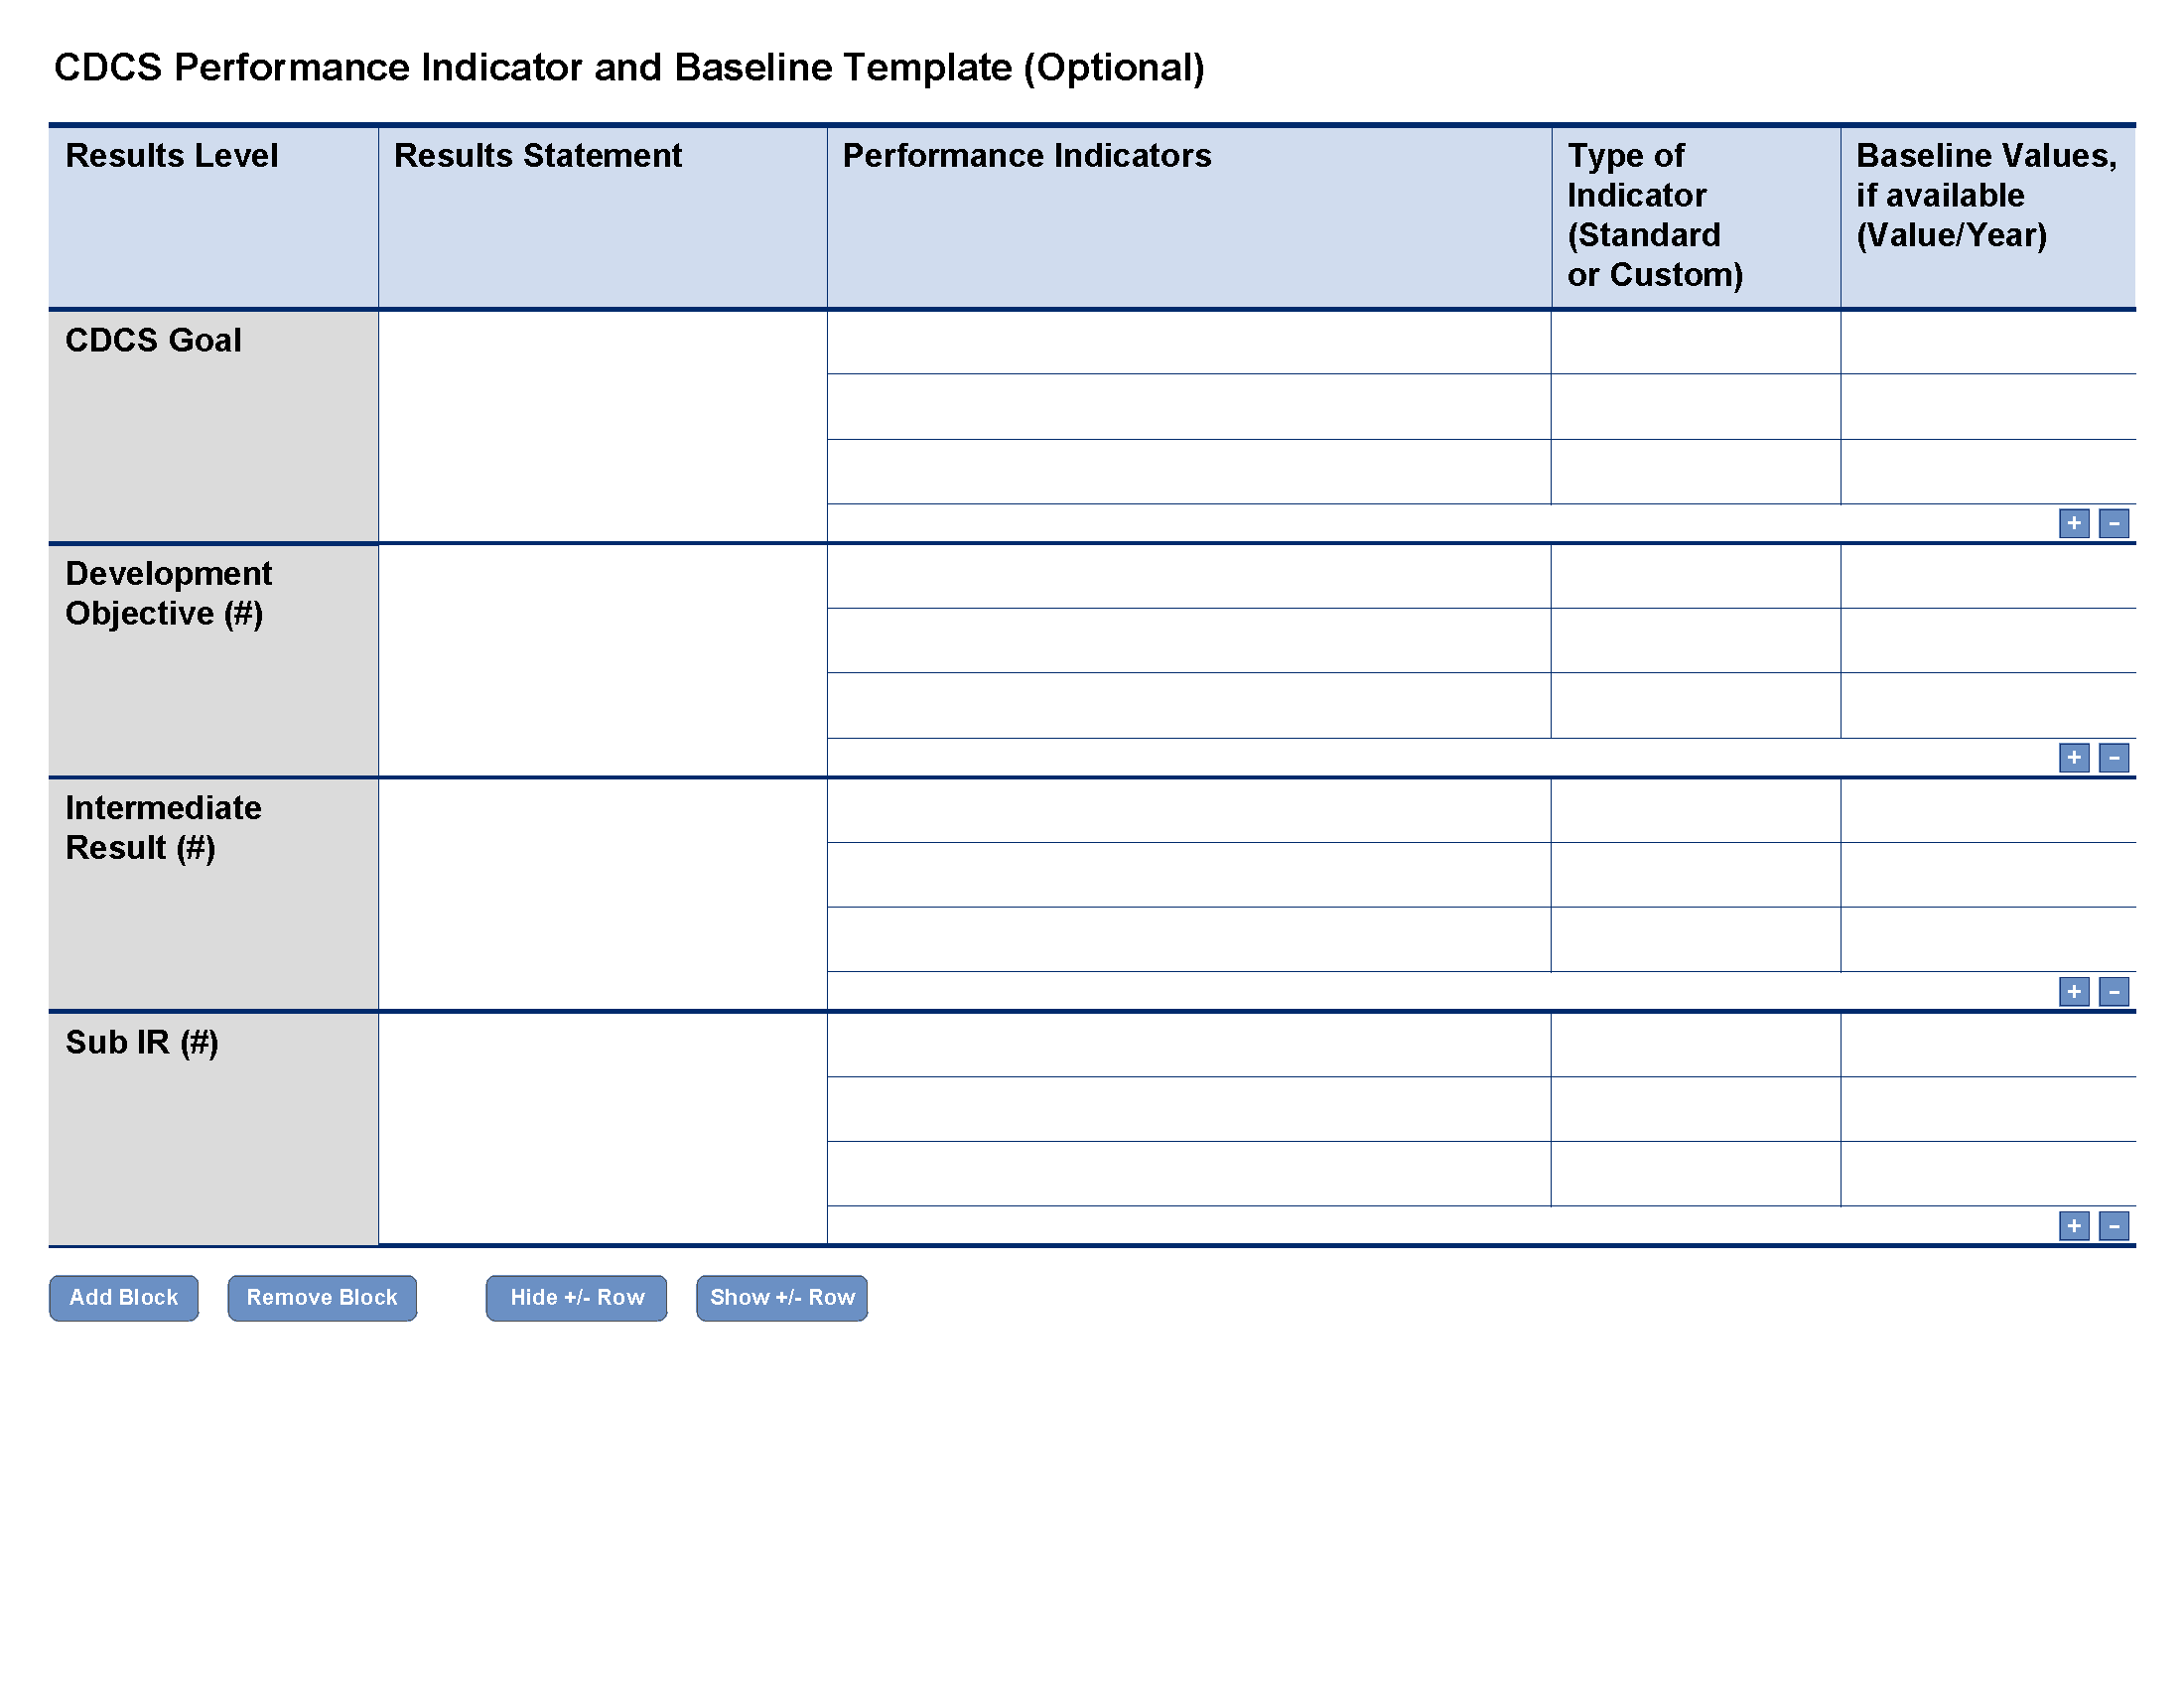 CDCS Performance Indicator and Baseline Template (Optional